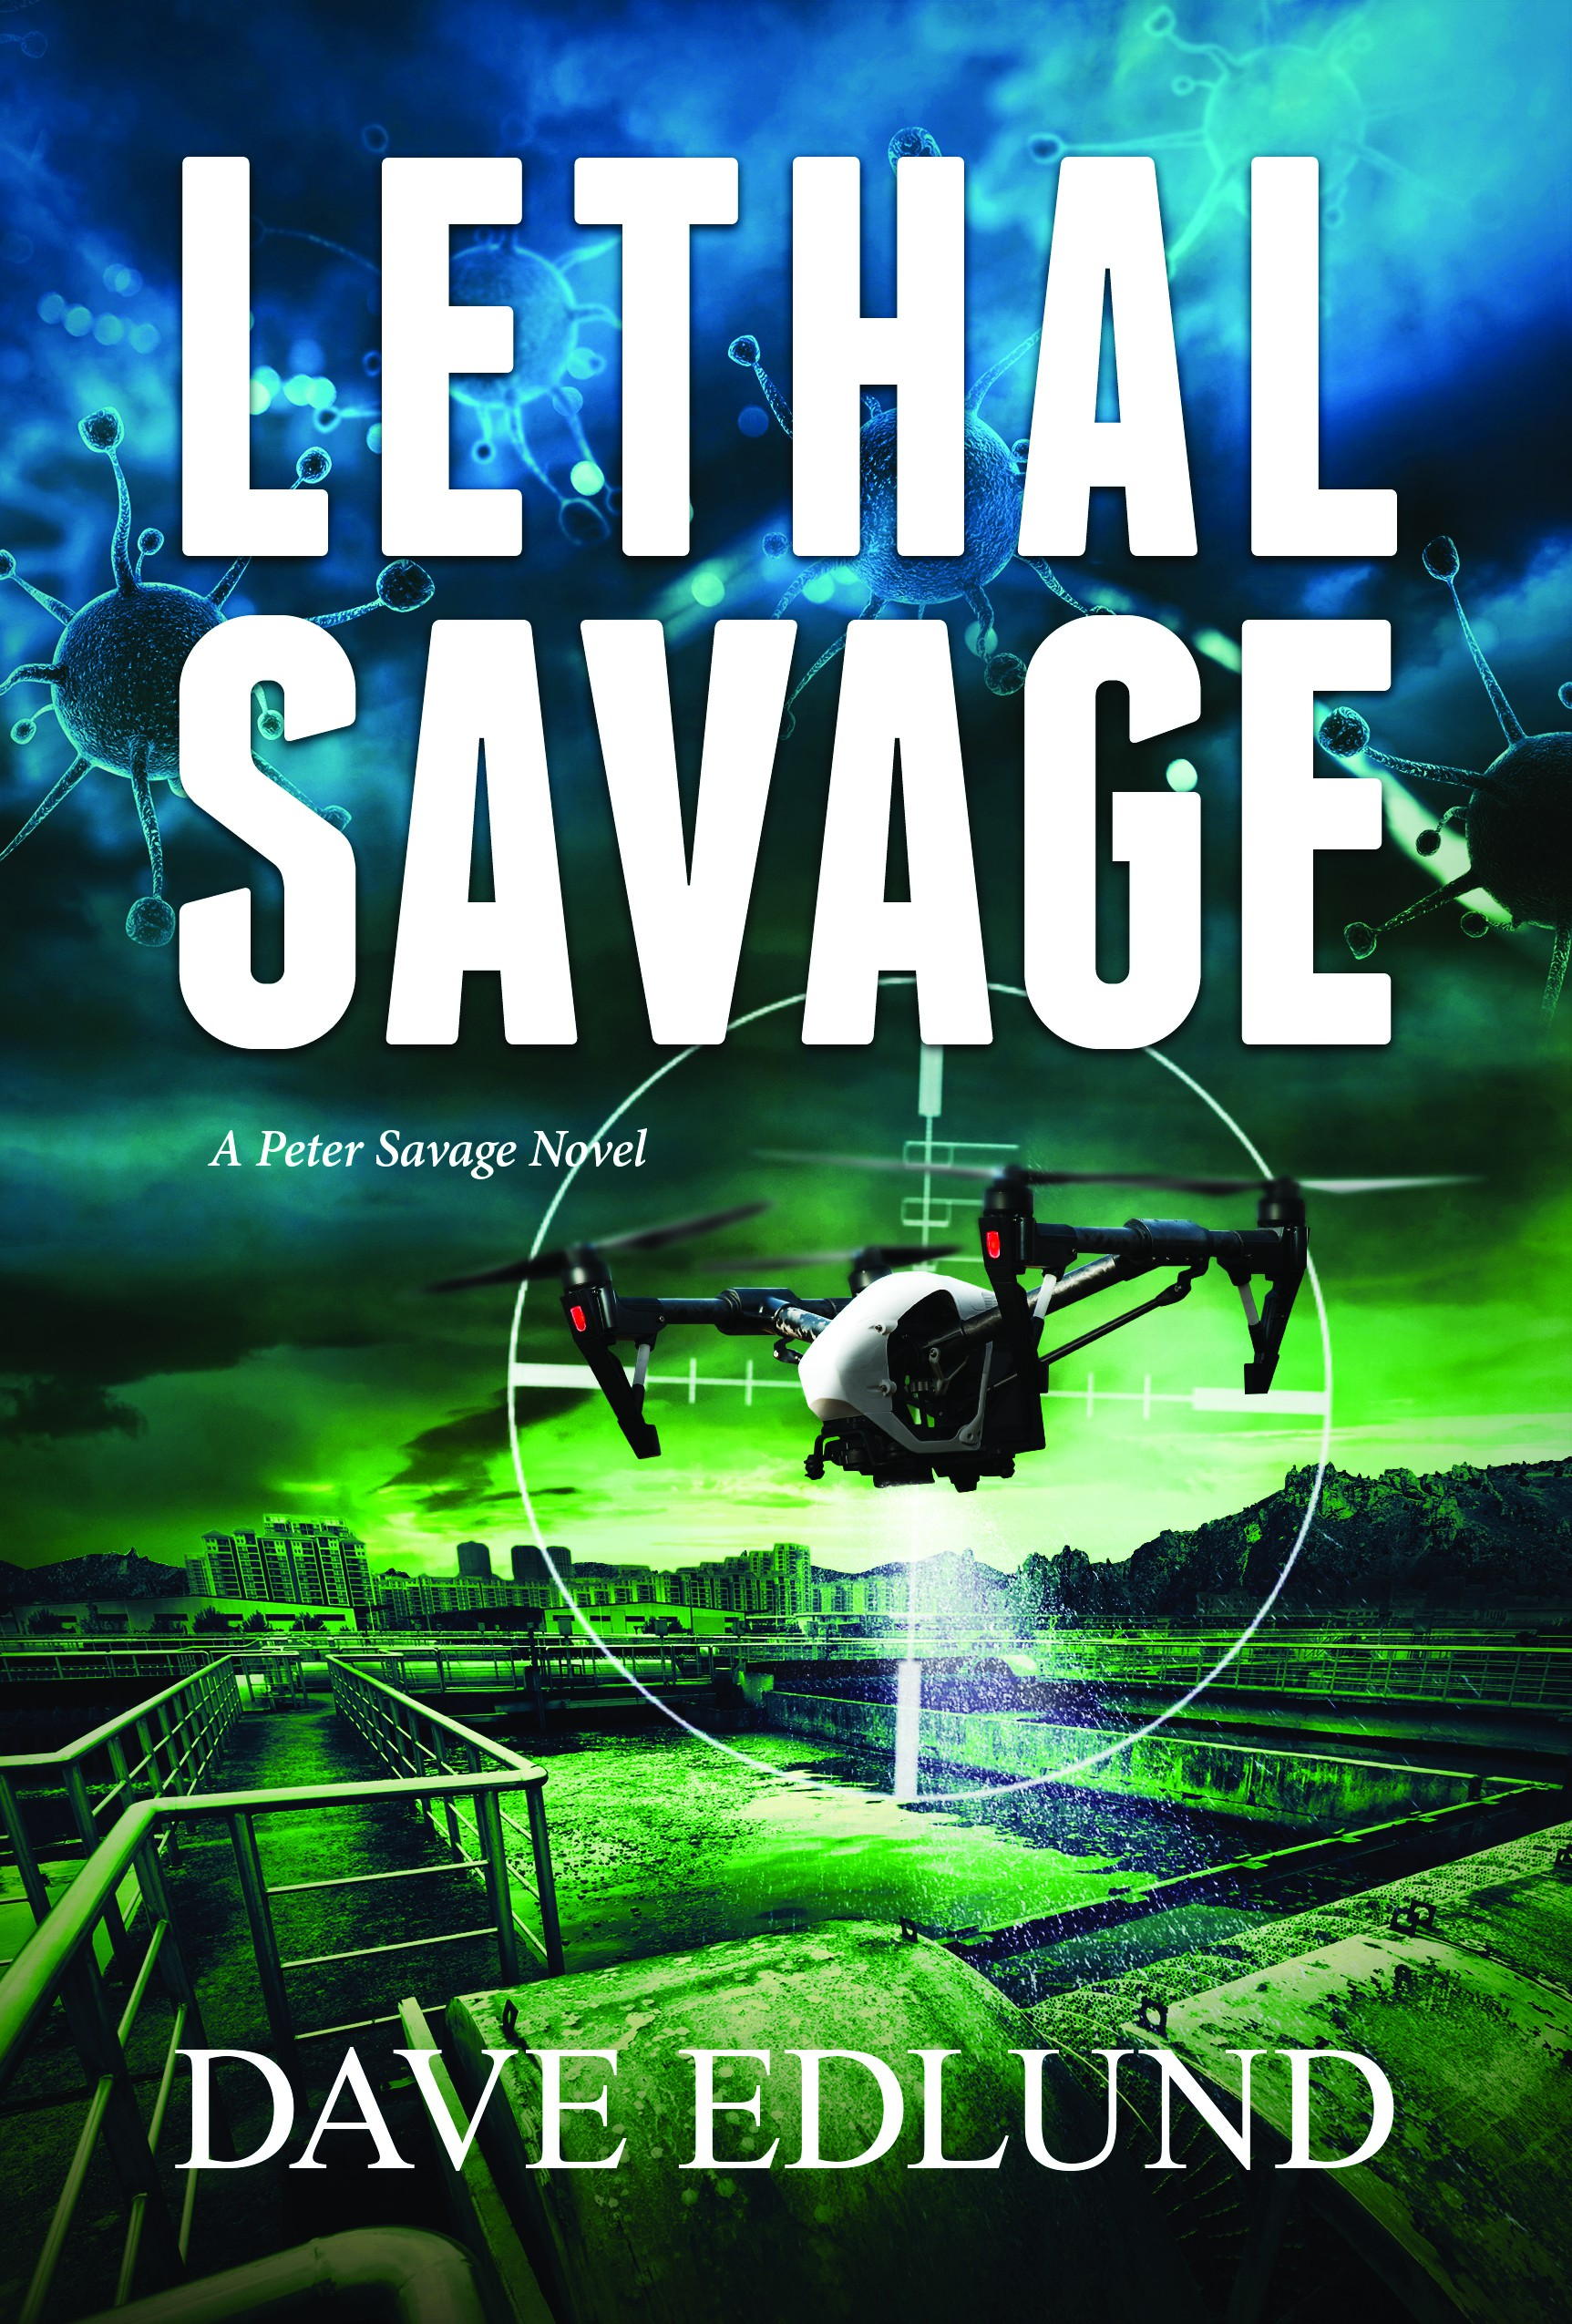 Covers for next book in 'Peter Savage' International Political Thriller Series